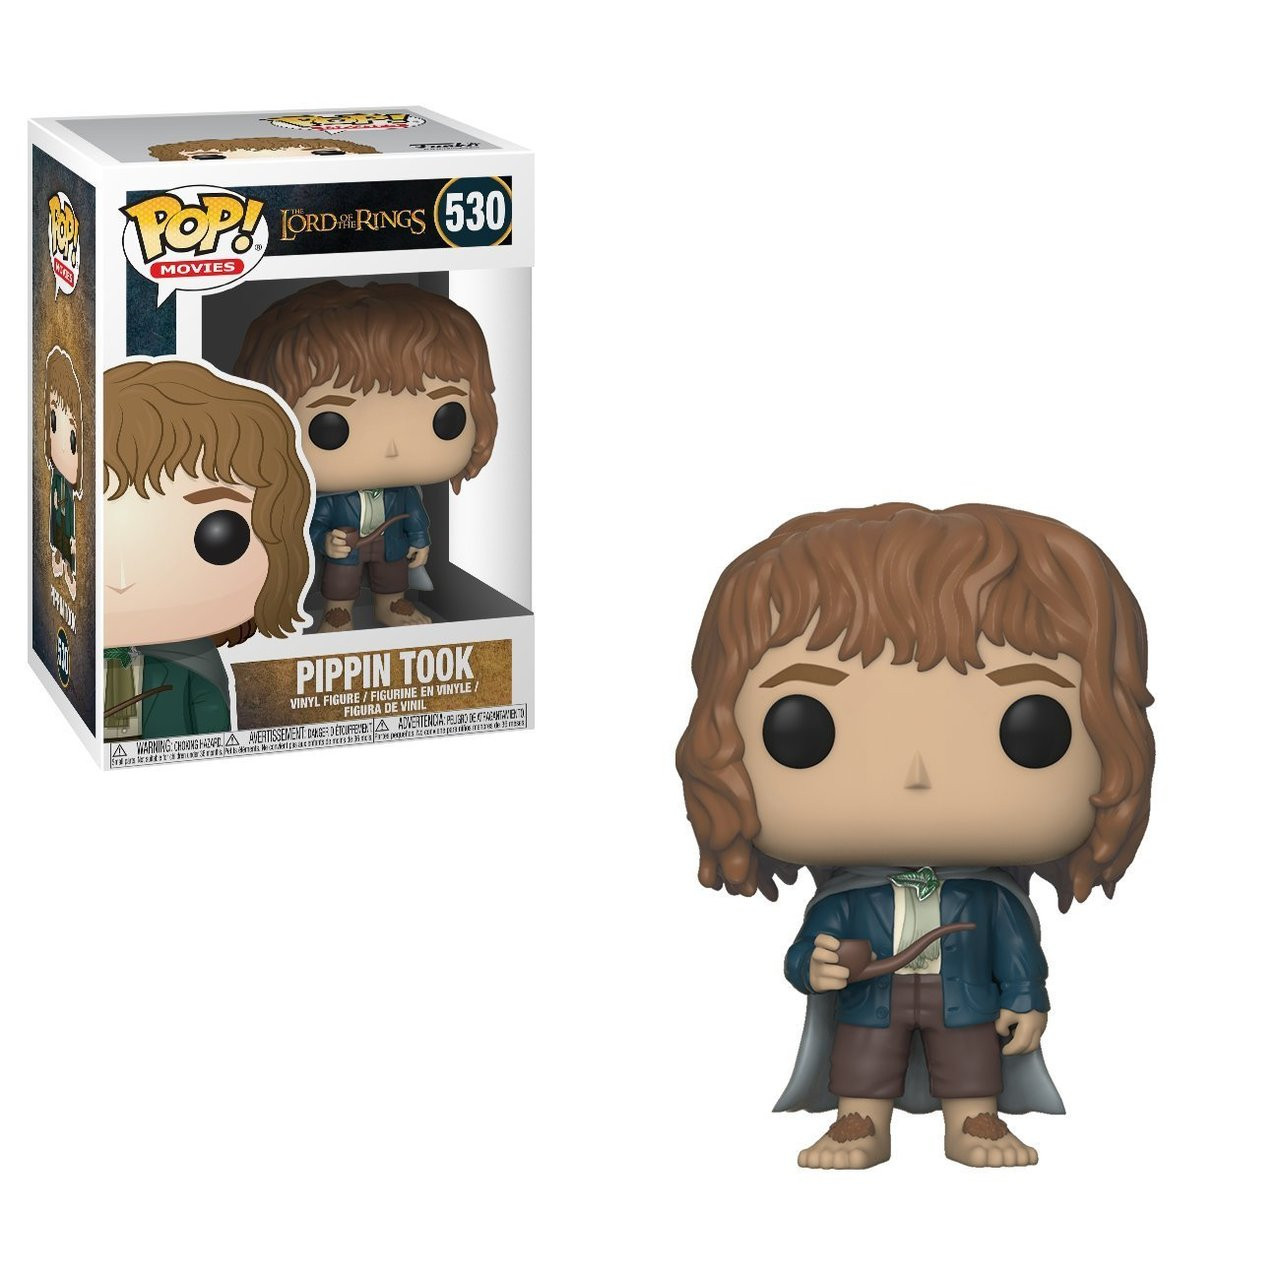 Funko POP Lord of the Rings Pippin Took Vinyl Collectible Figure Toy